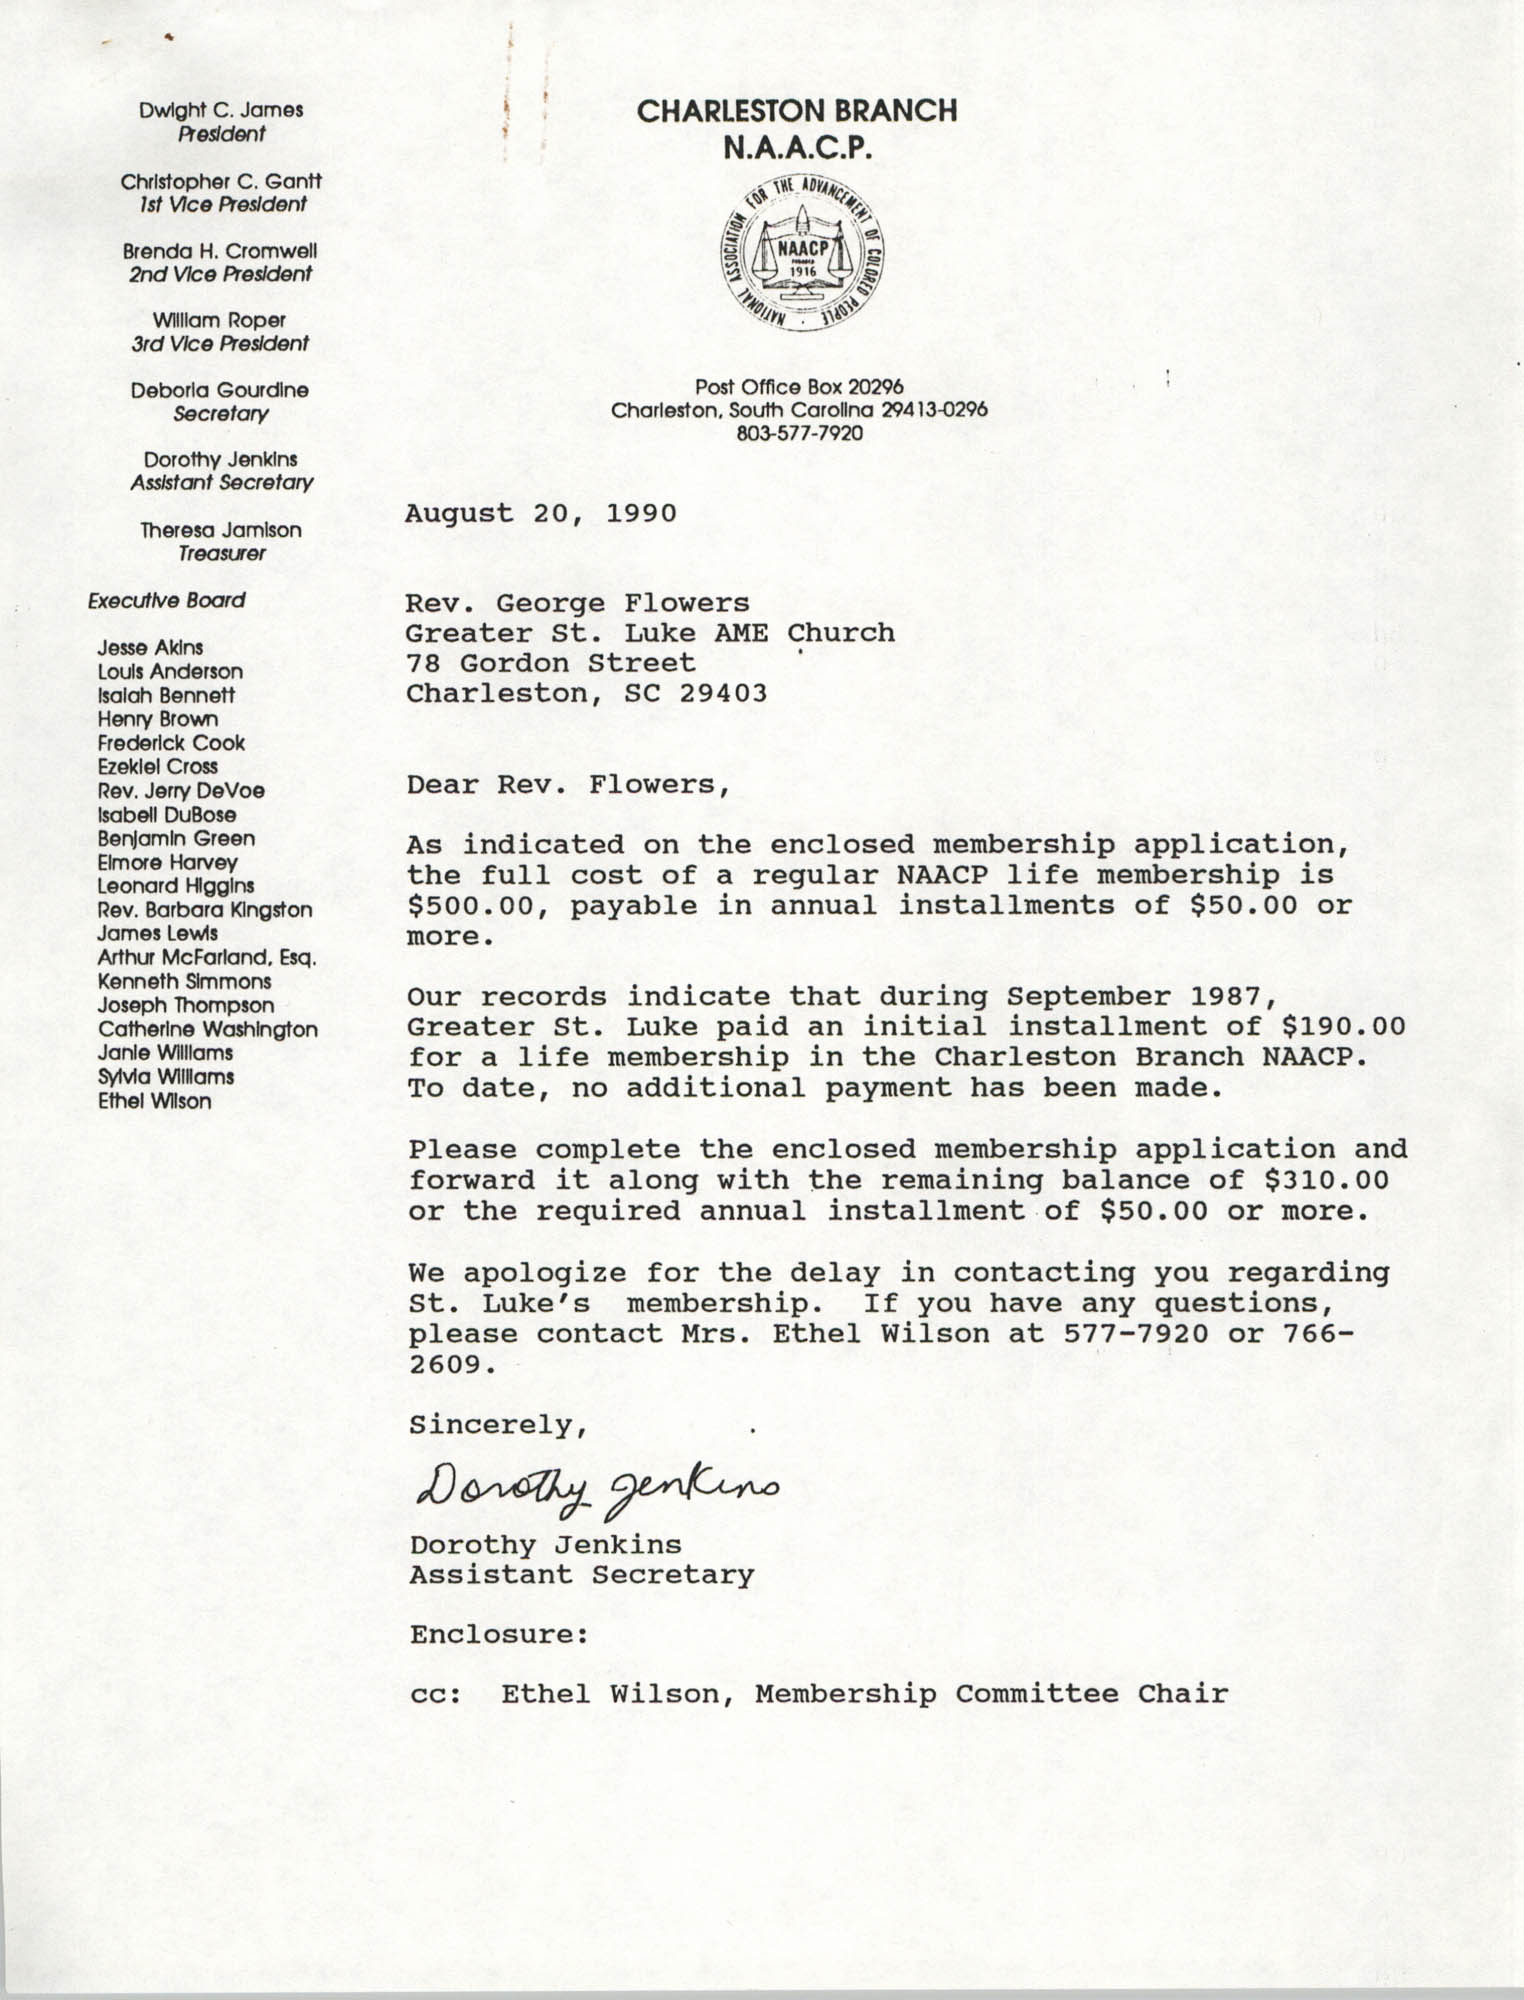 Letter from Dorothy Jenkins to George Flowers, August 20, 1990